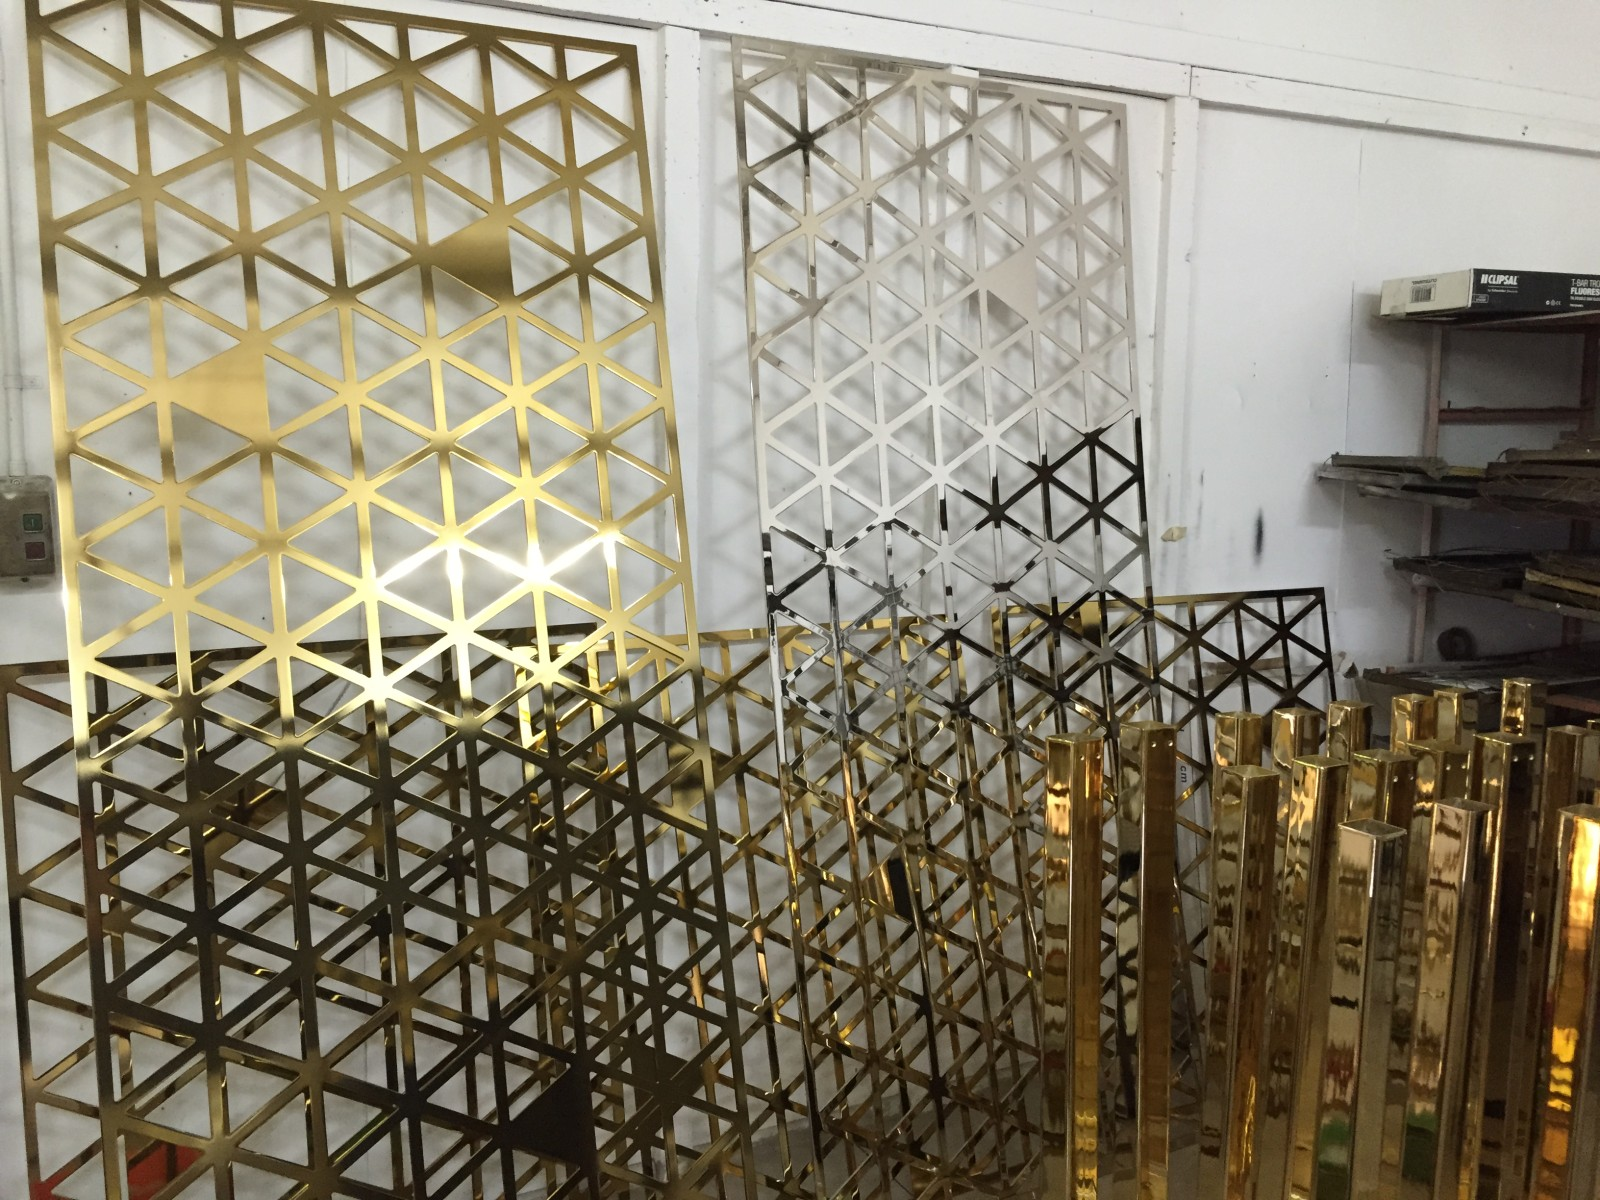 Laser cut 3mm aluminium screens; mirror polished and brass-plated